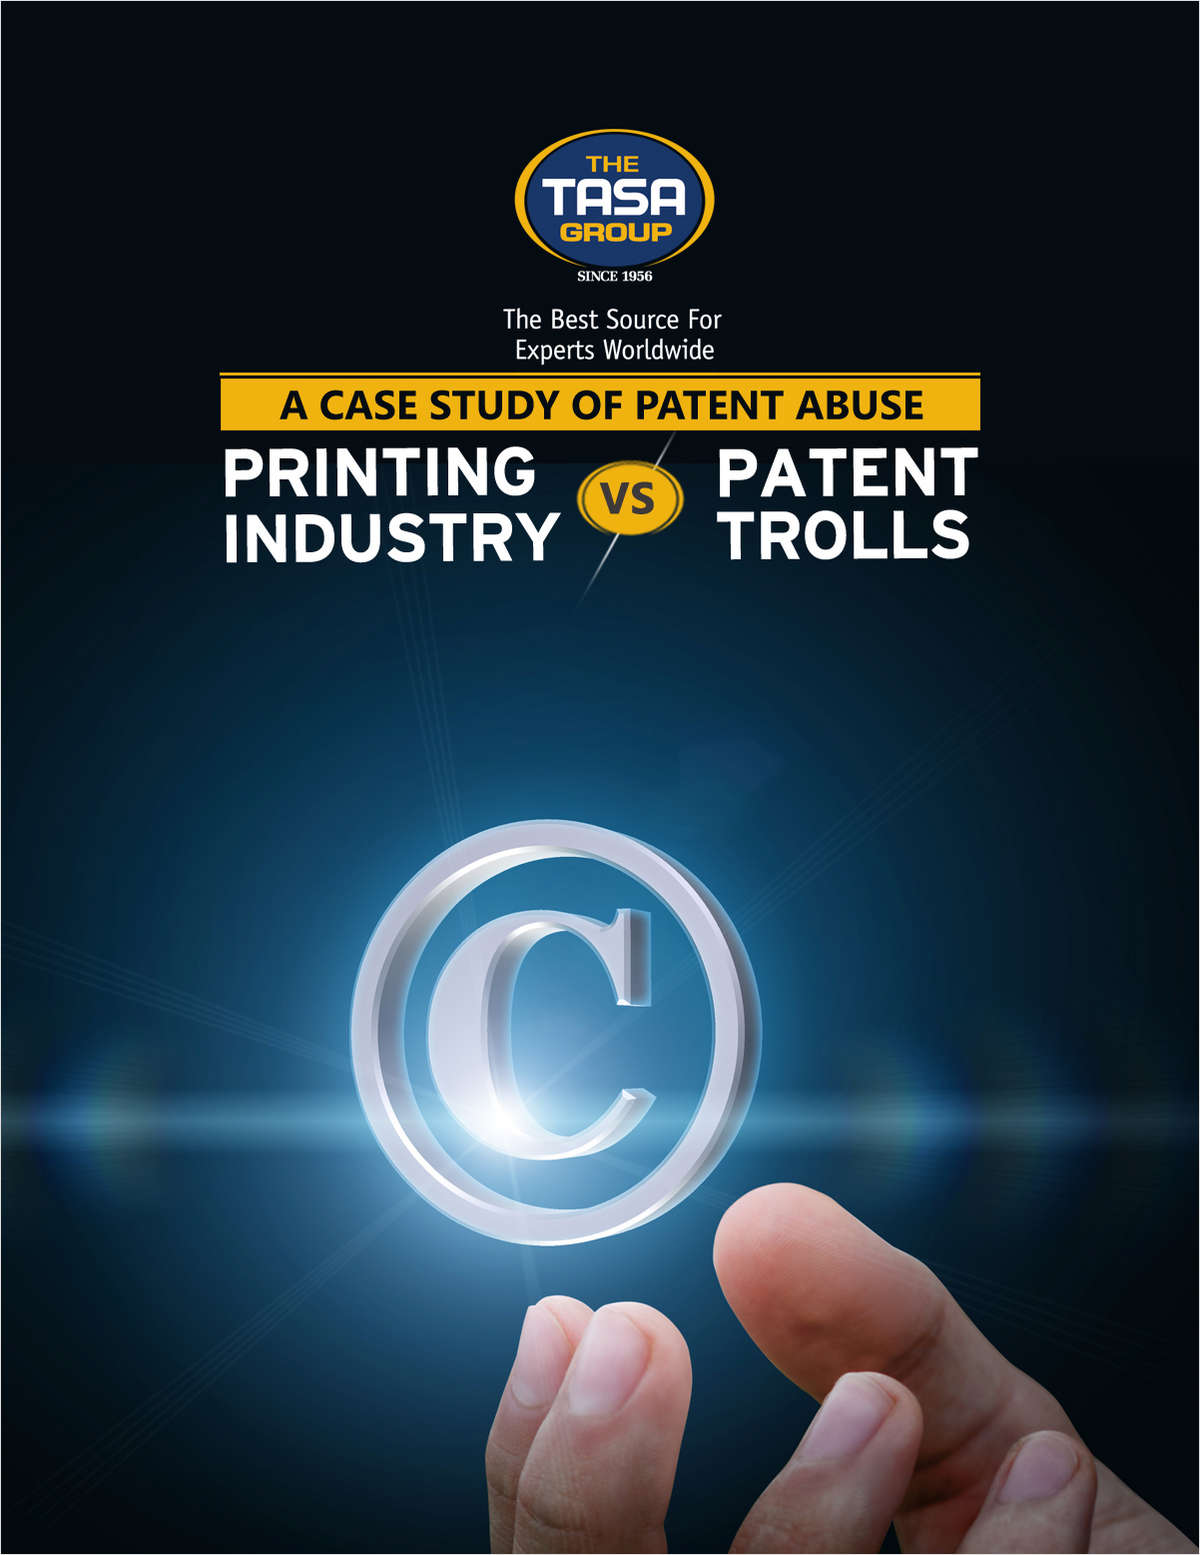 A Case Study of Patent Abuse: Printing Industry vs Patent Trolls